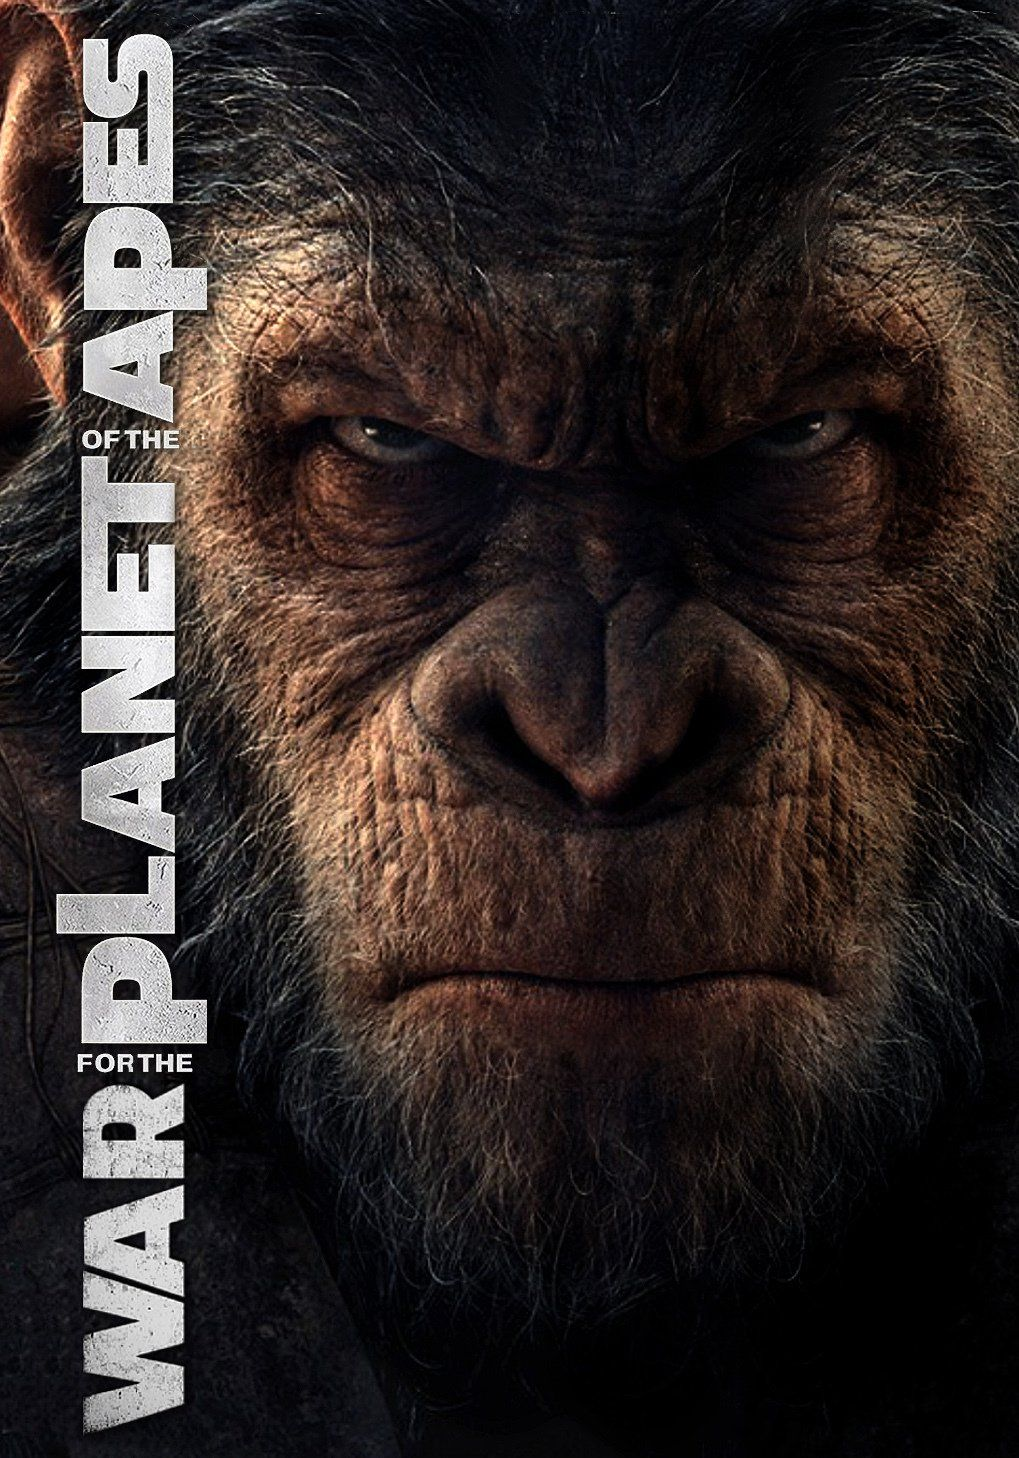 download subtitle indonesia dawn of the planet of the apes 2017